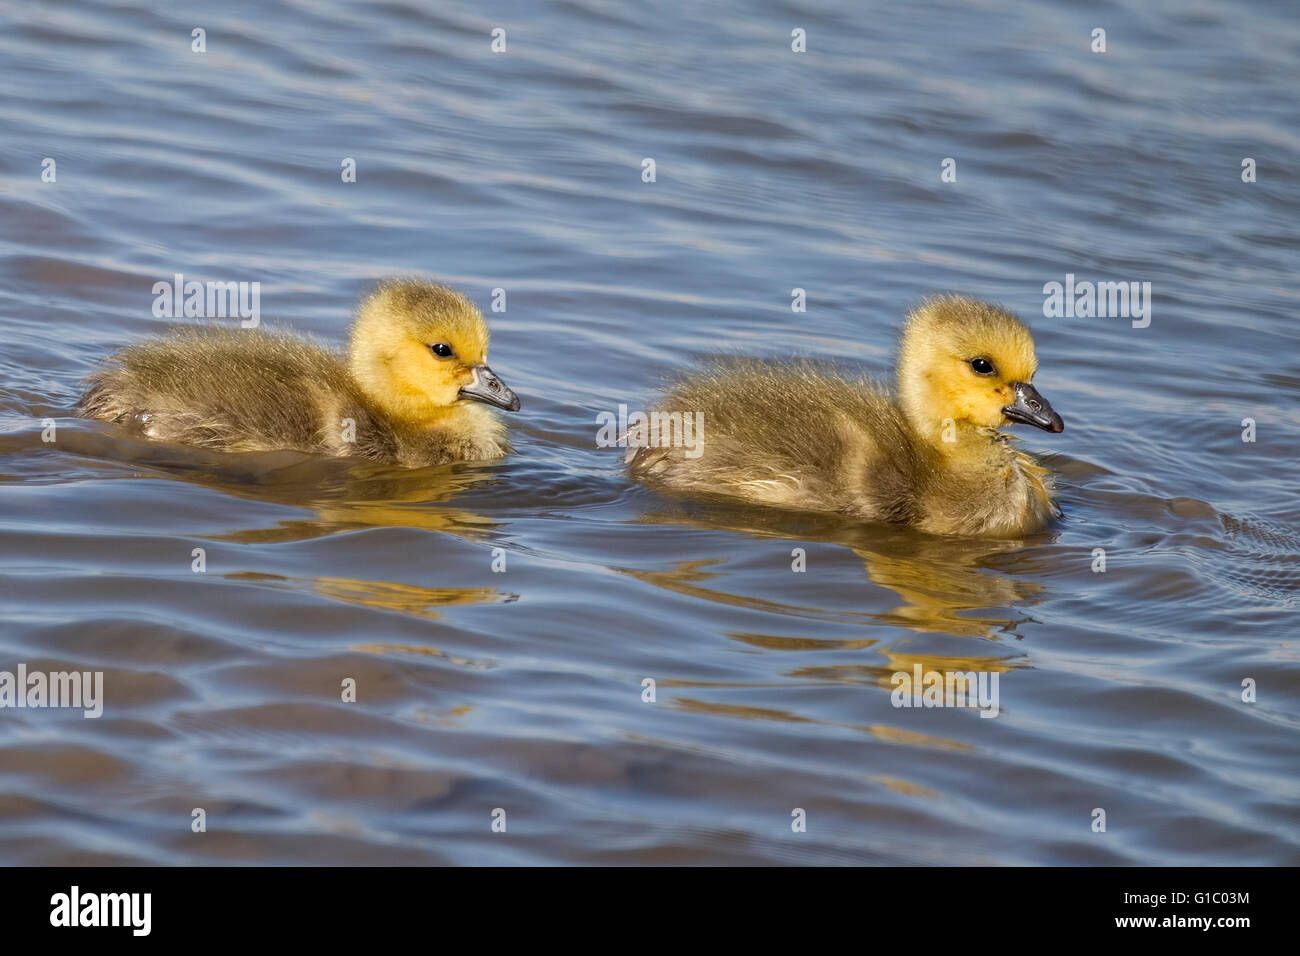 A pair of Canada Gosling's - Stock Image